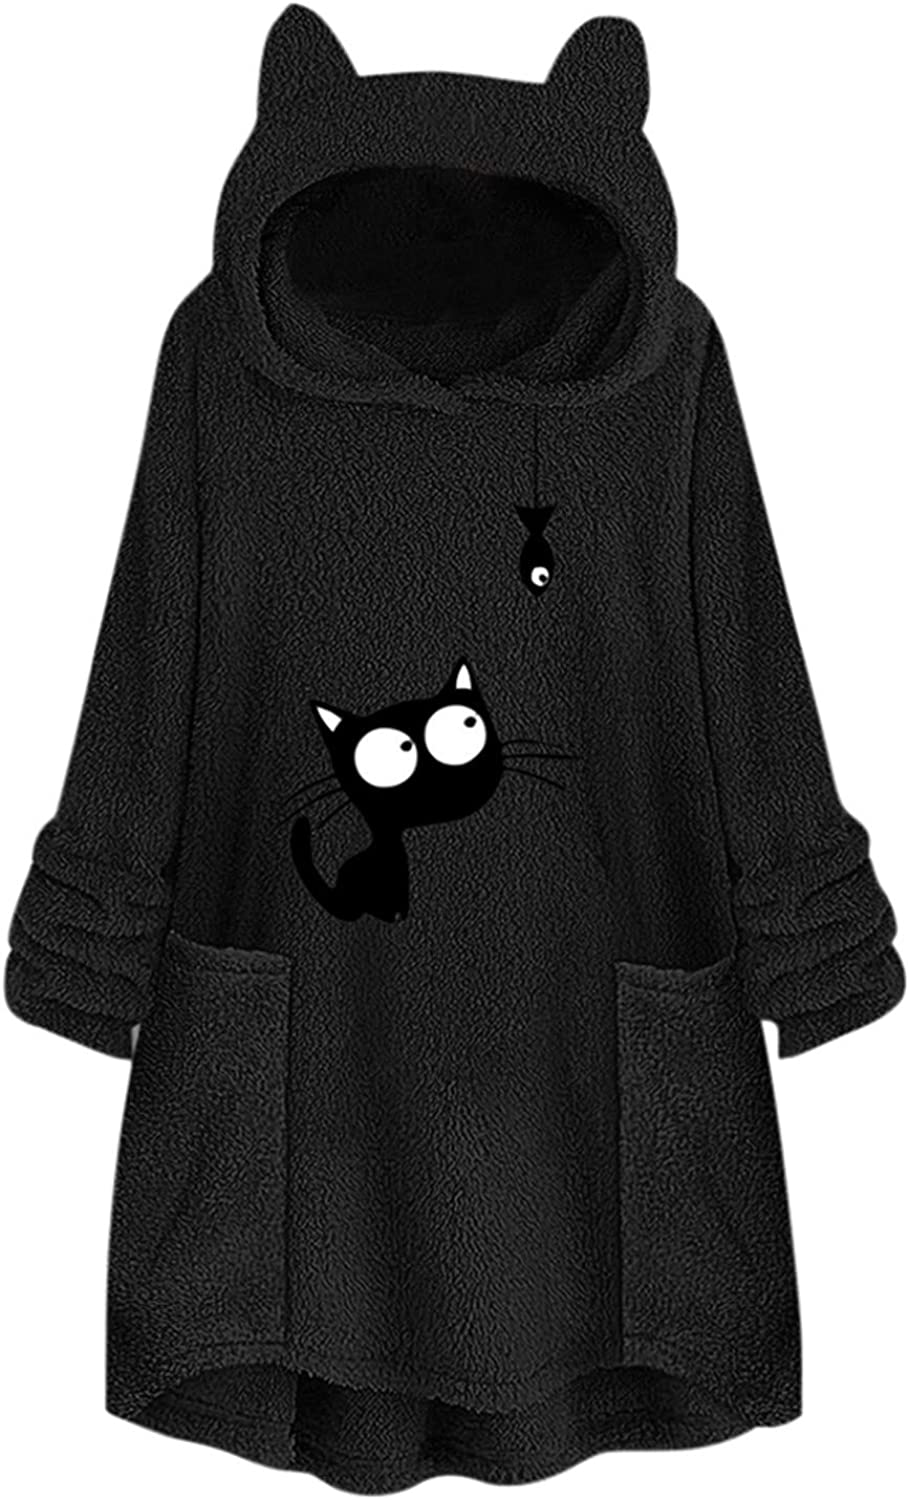 Women's Hoodie Pullover Long Sleeve Oversize Button Hooded Sweatshirts Solid Color Warm Sweater Tops Coats